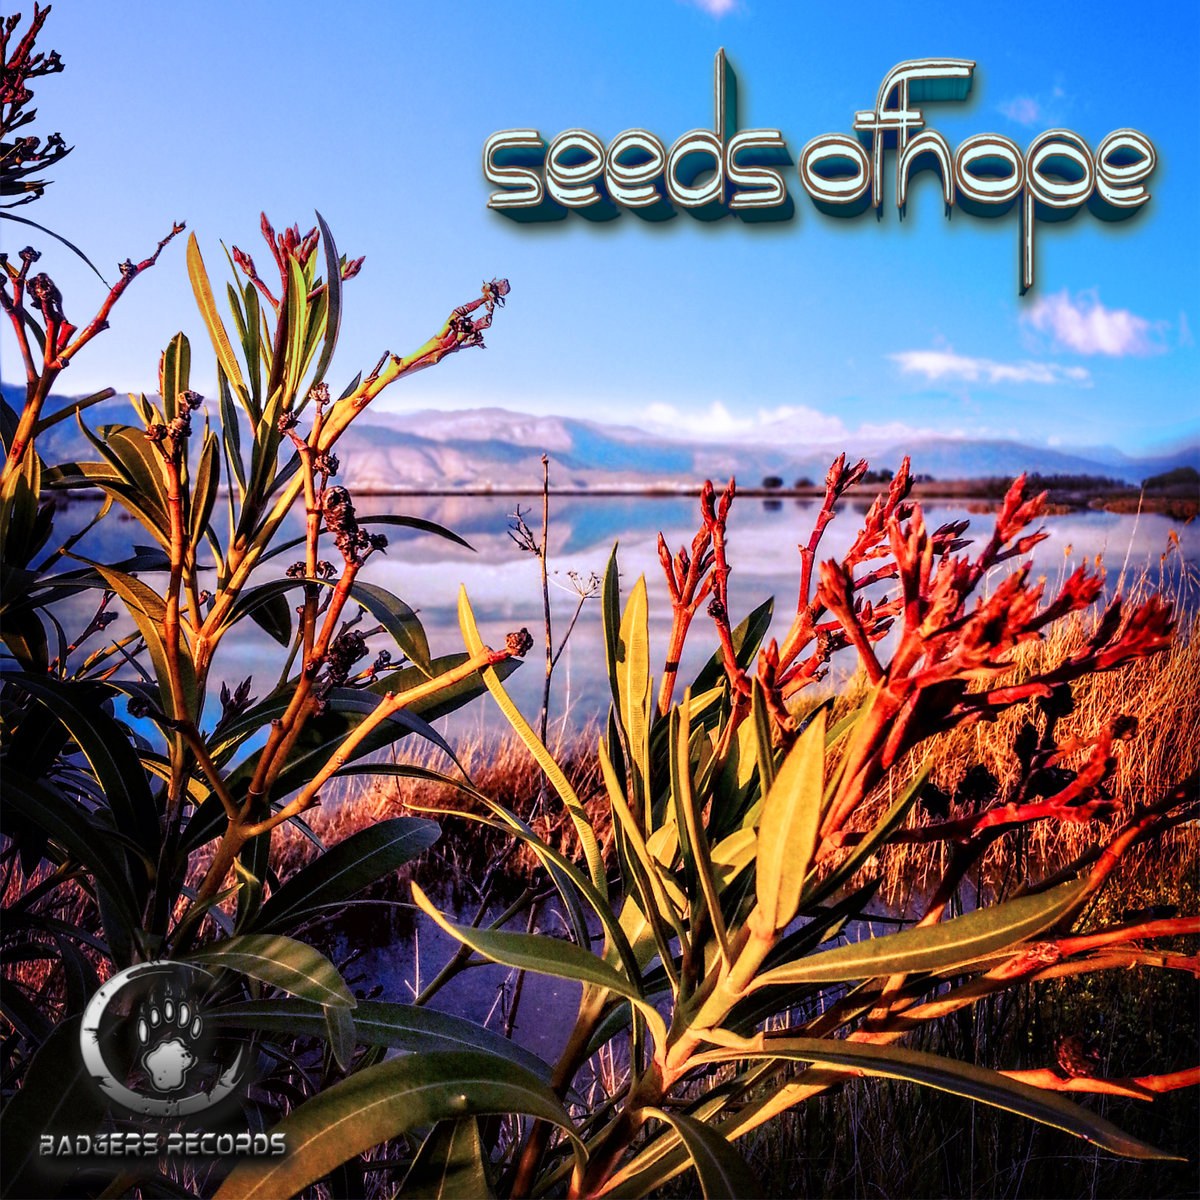 Flowertz - Time To Change @ 'Various Artists - Seeds Of Hope' album (dark psy, downtempo)